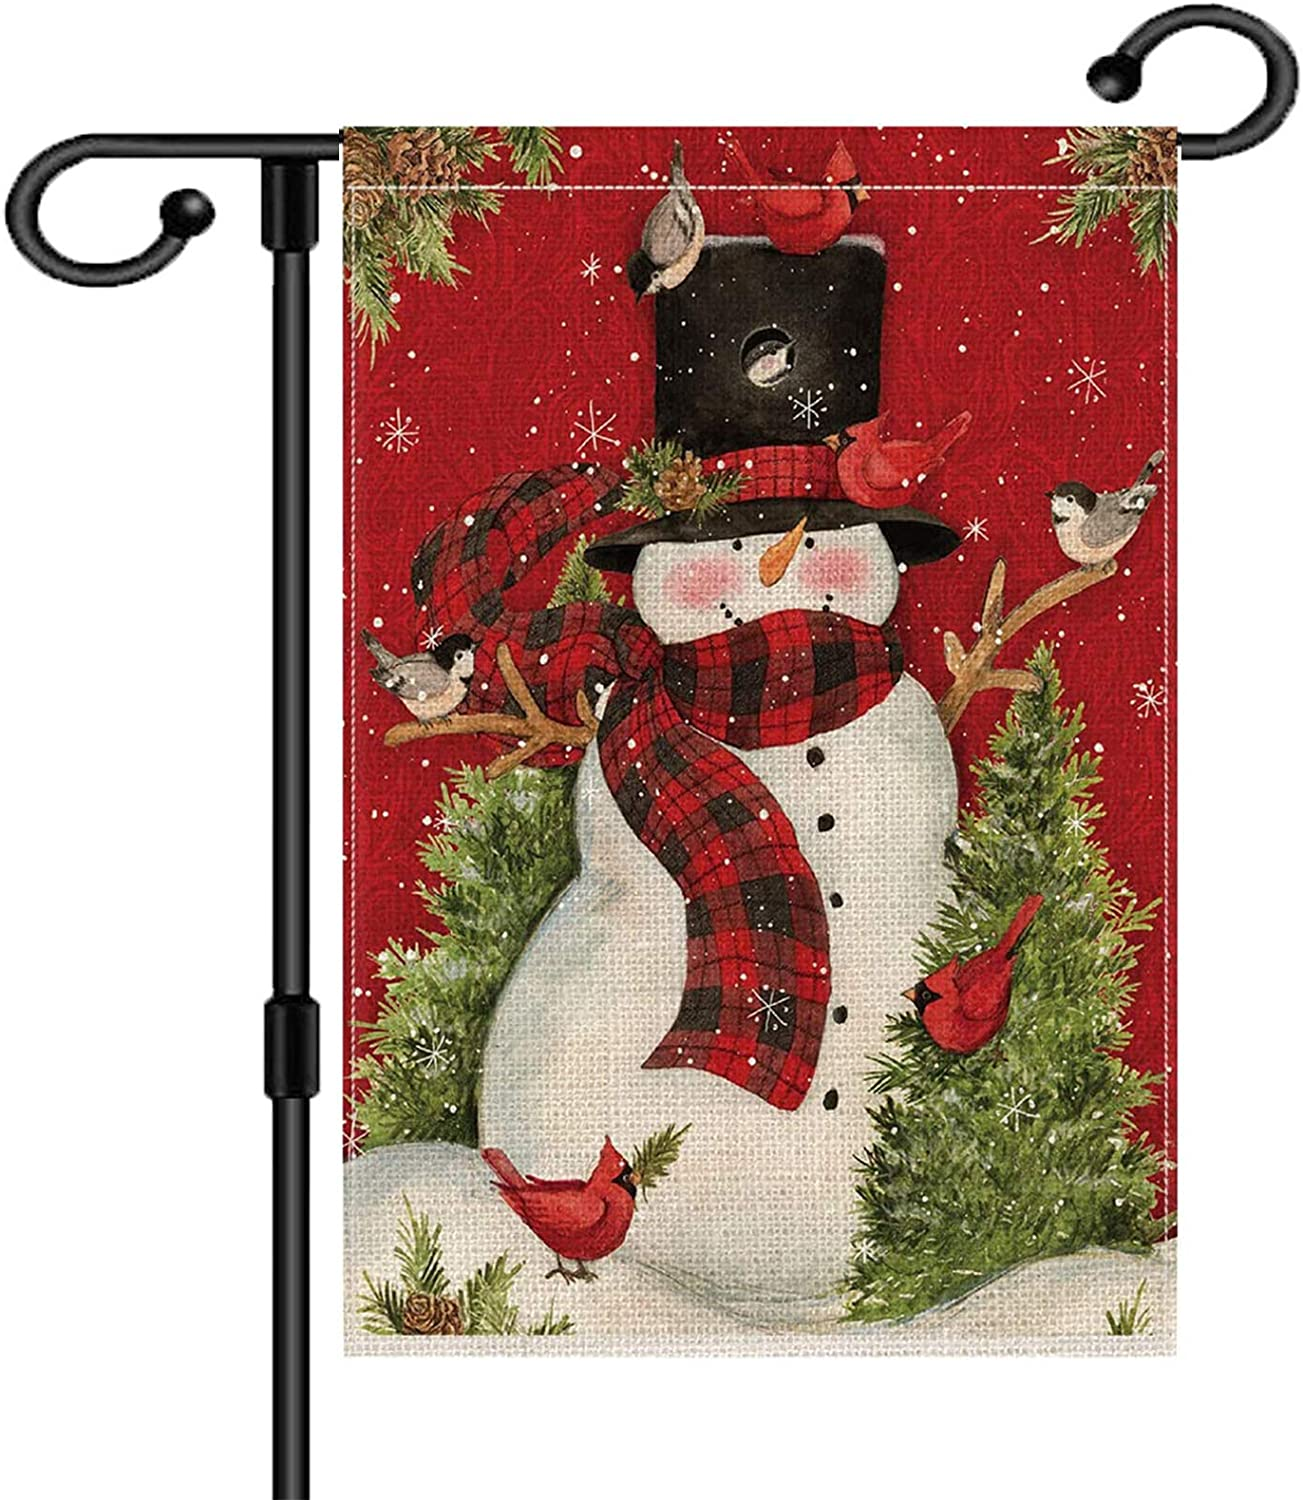 Winter Holiday Christmas Garden Flag Double Sided Snowman with Buffalo Plaid Scarf Yard Outdoor Decoration 12.5 x 18 Inch